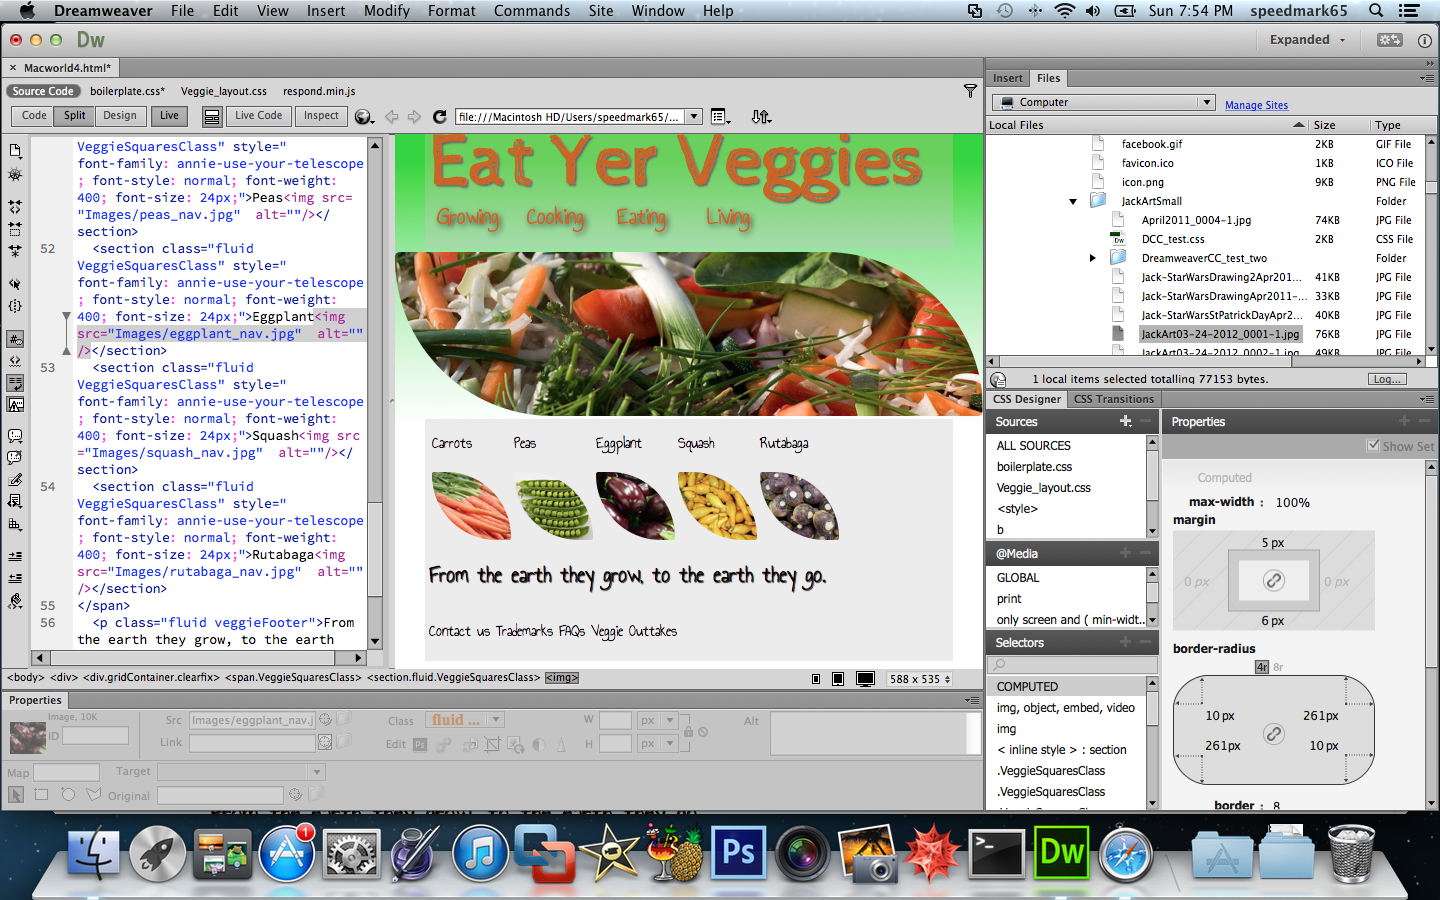 Review: Adobe Dreamweaver CC makes CSS more visual, less coder